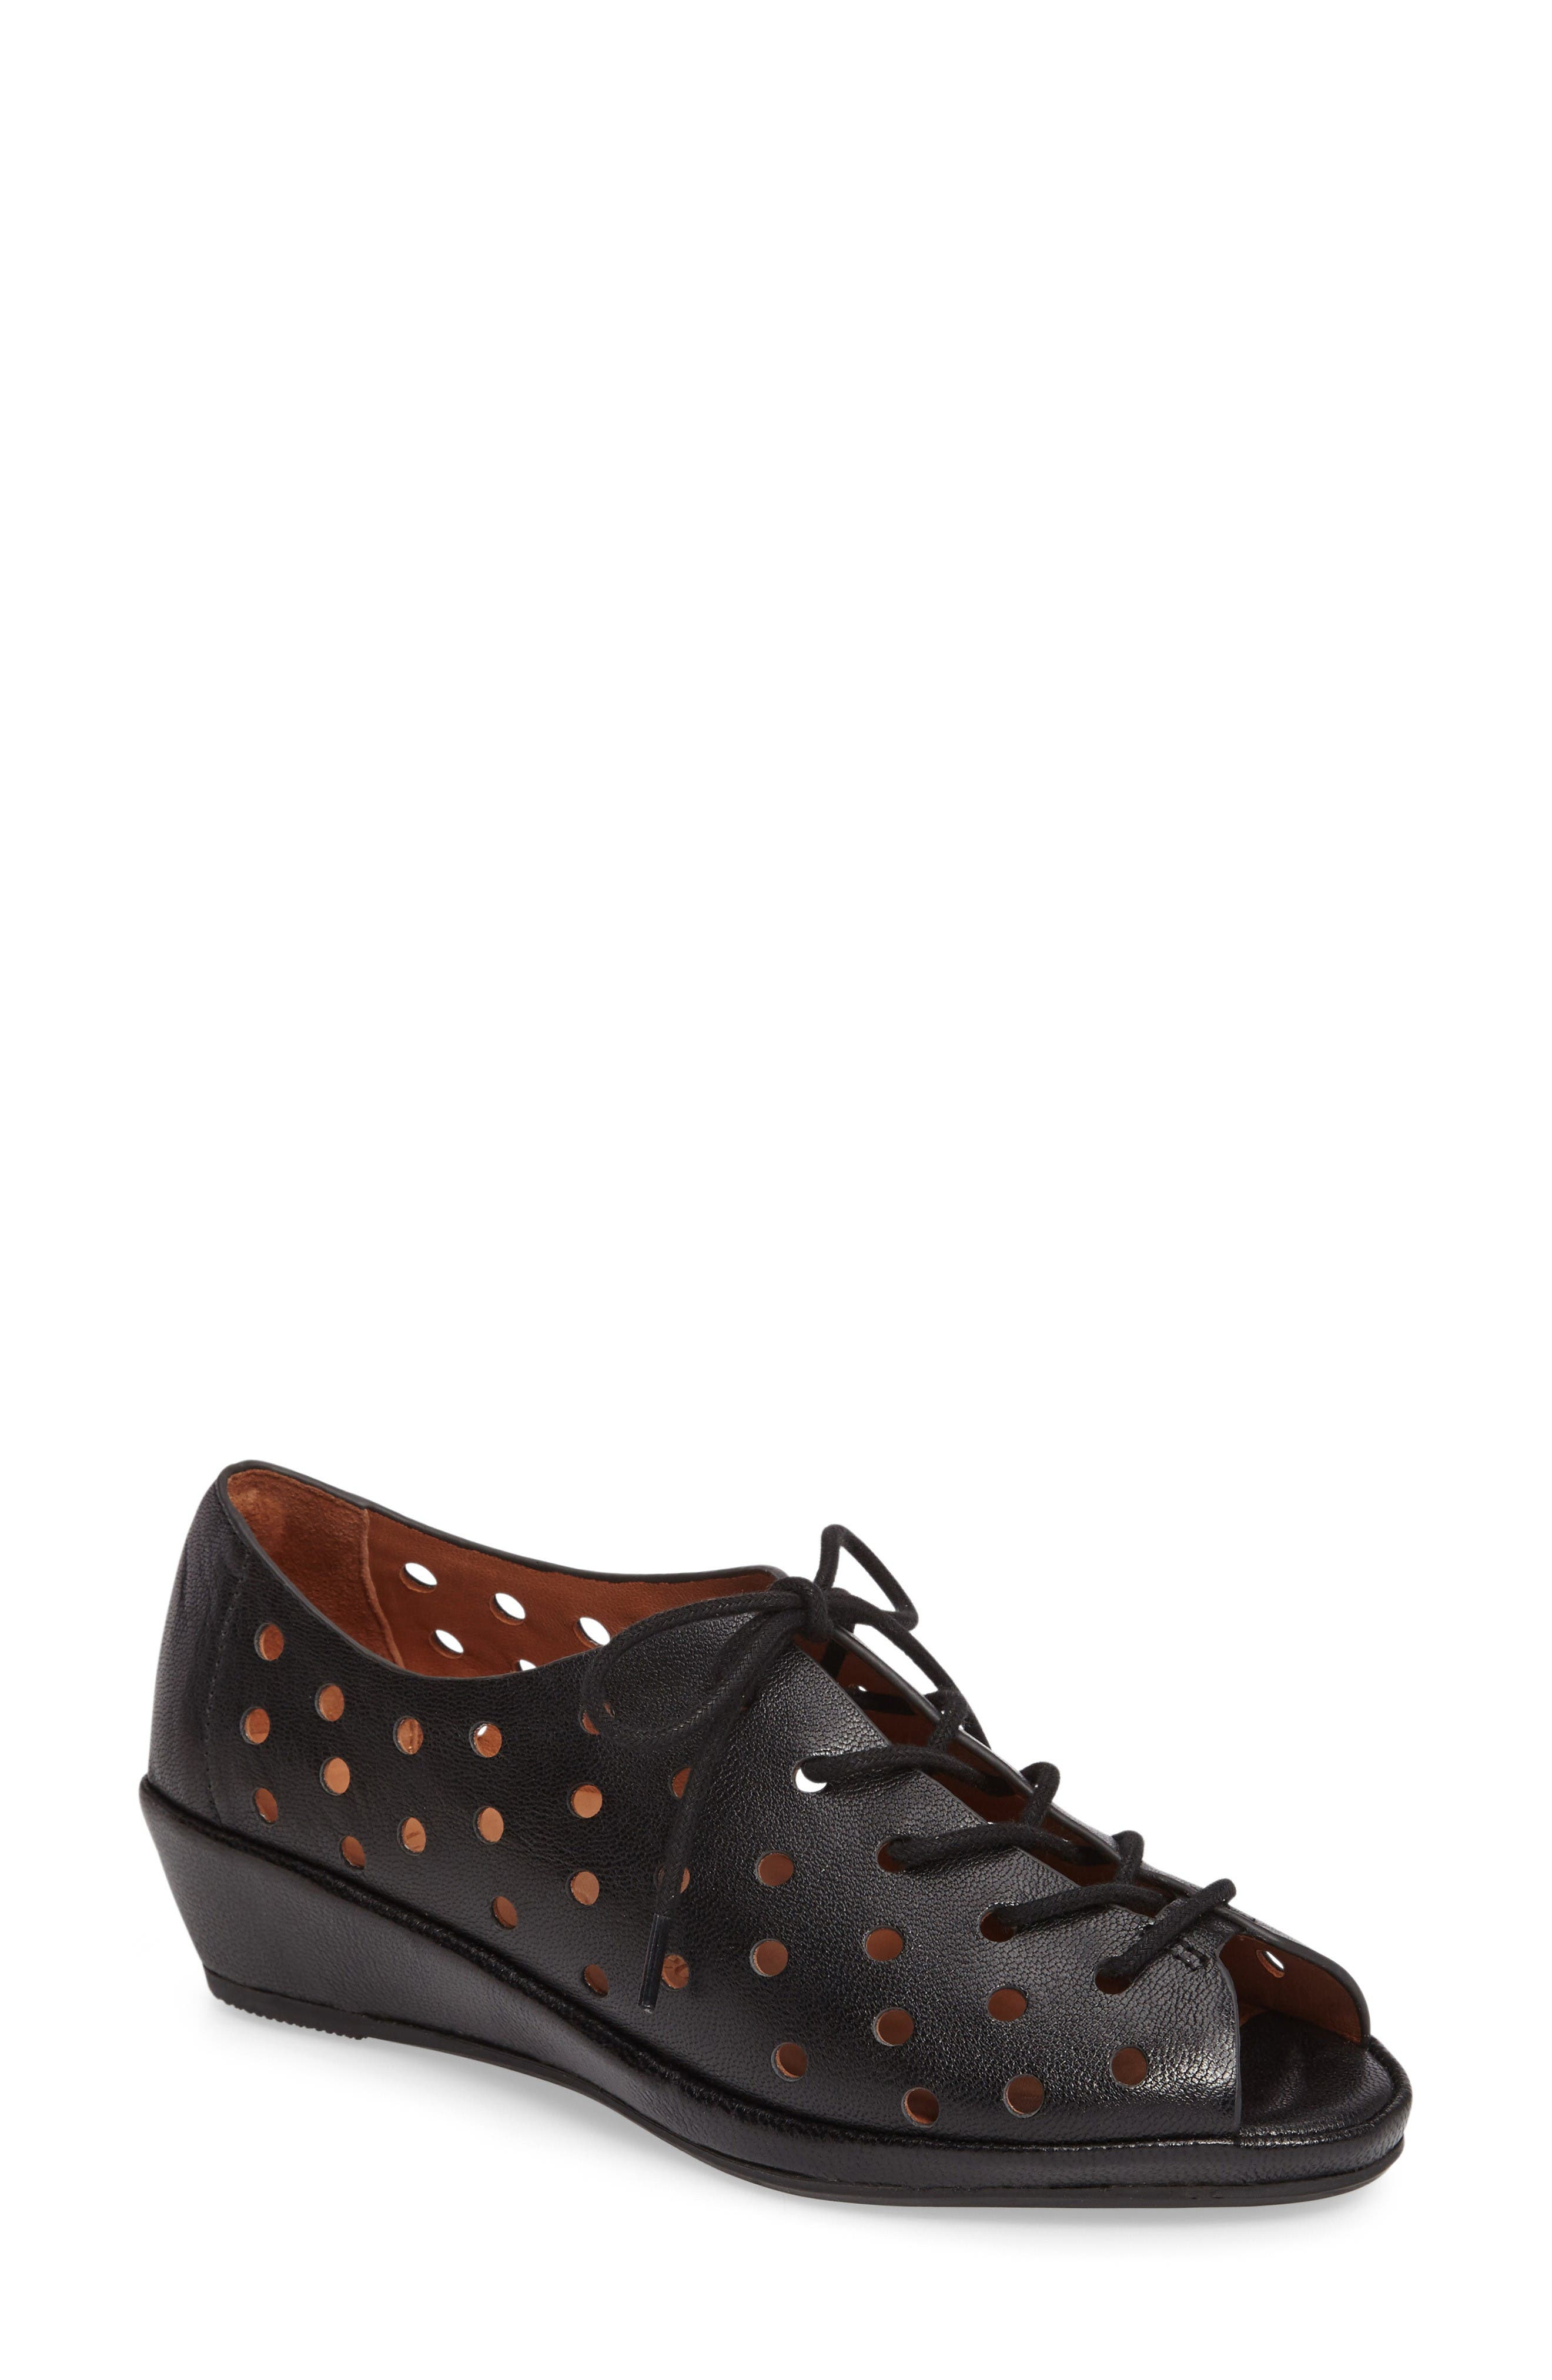 L`amour Des Pieds Womens Boccoo Oxford